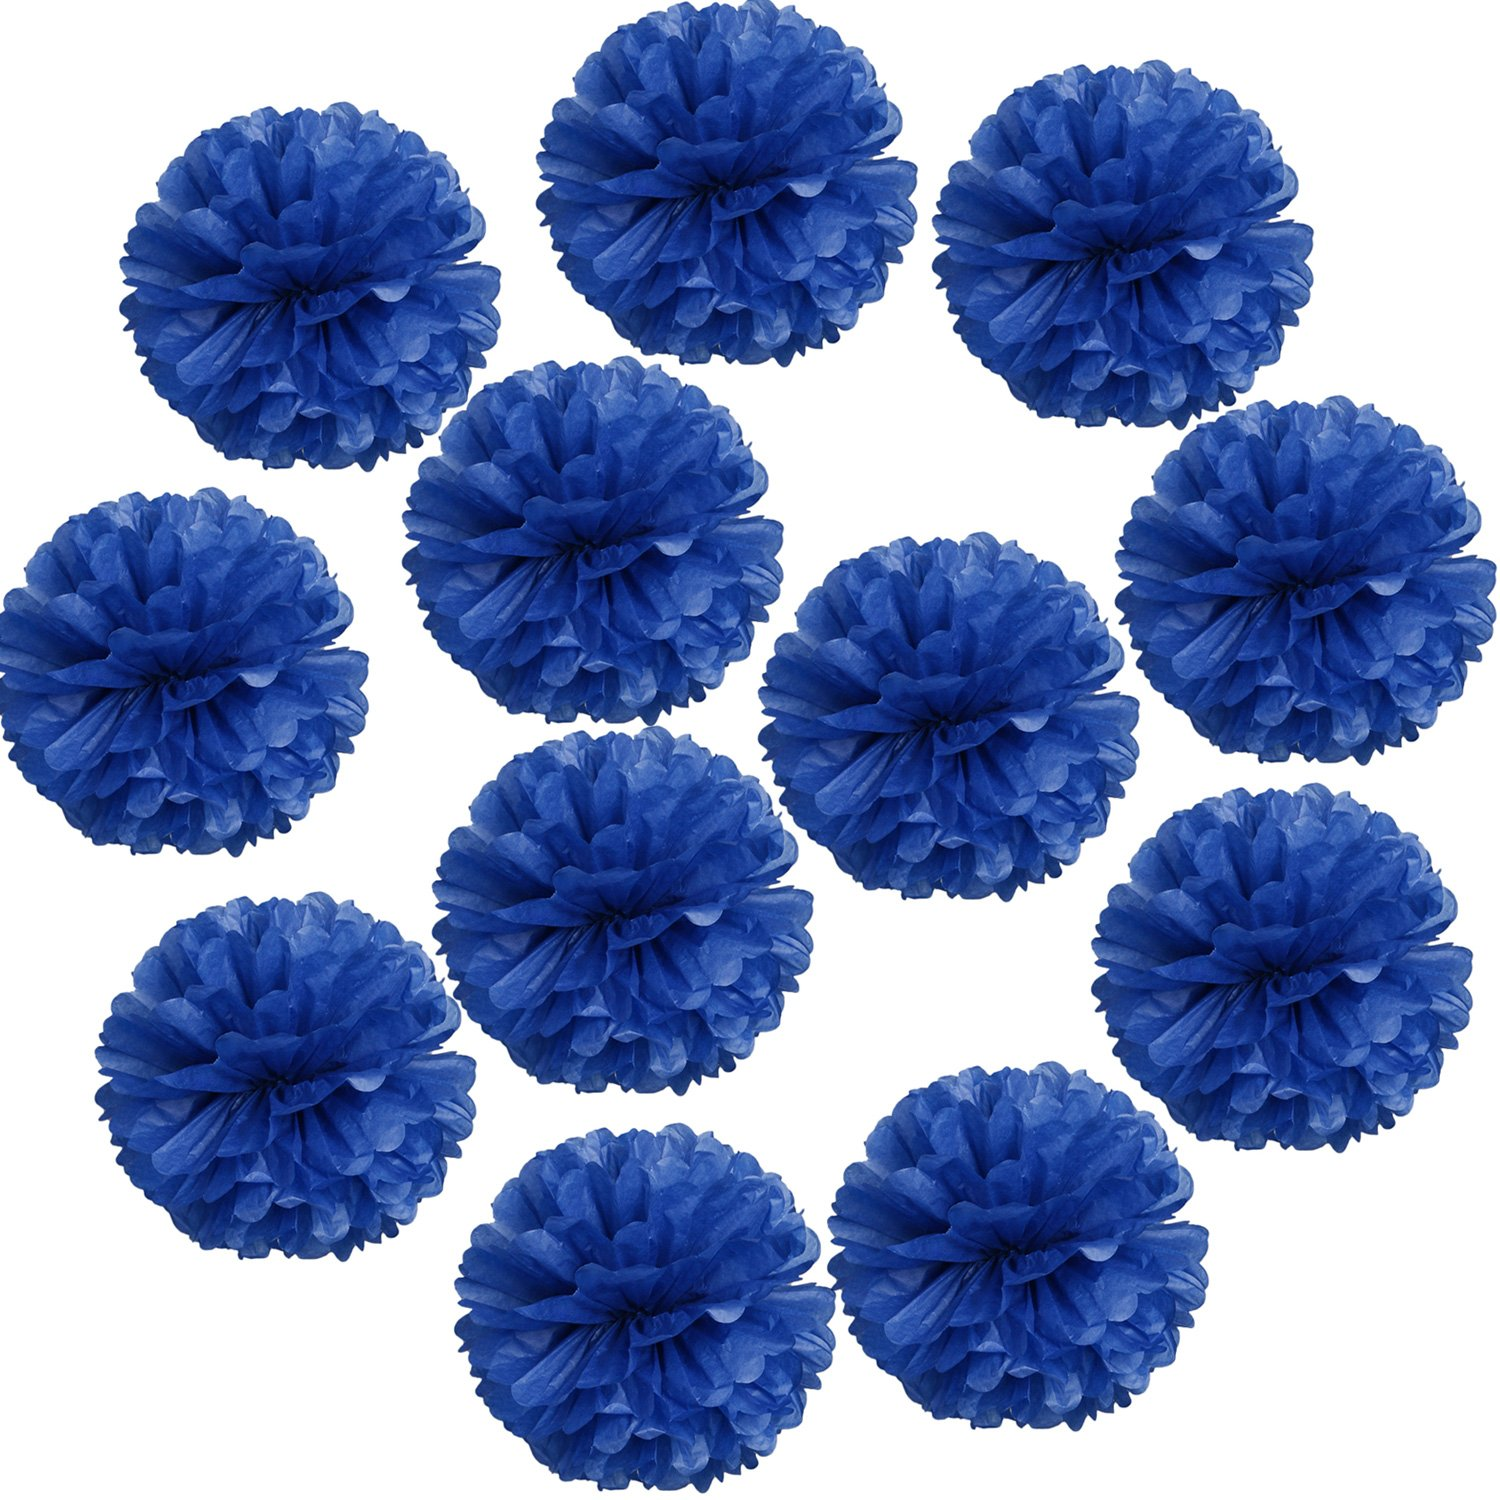 Landisun Wedding Birthday Party Room Decoration Tissue Paper Flower Poms(10'' Inches (pack of 12), Royal Blue)